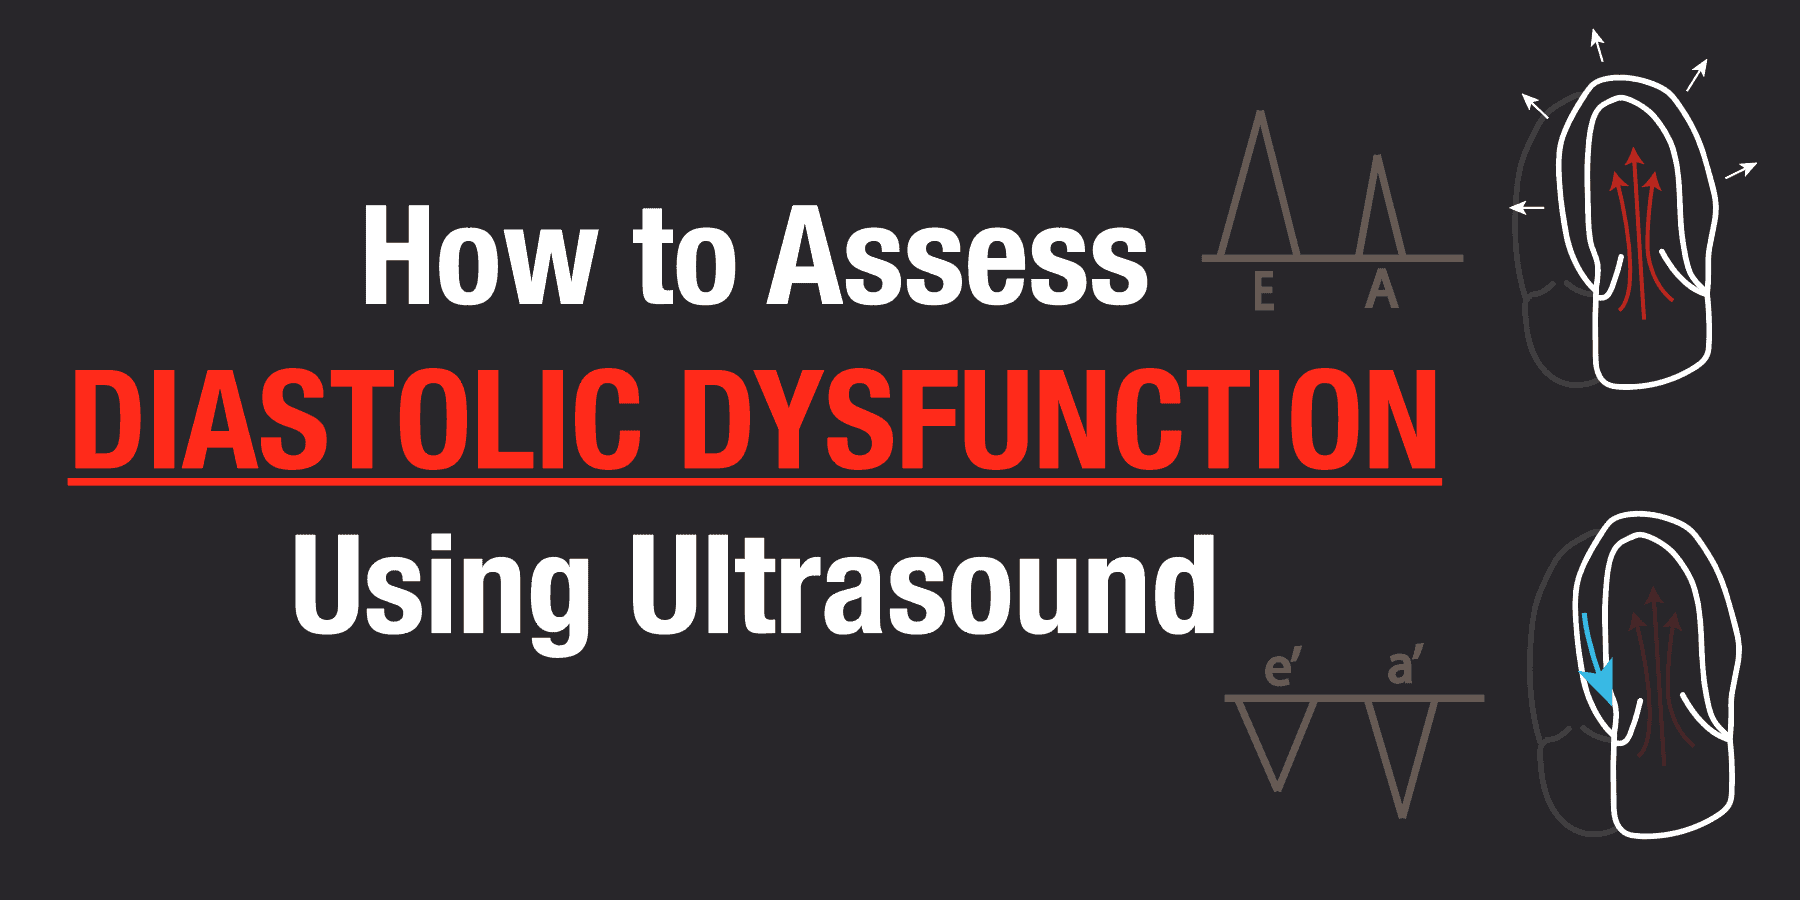 How to Assess and Grade Diastolic Dysfunction Using Ultrasound - POCUS 101